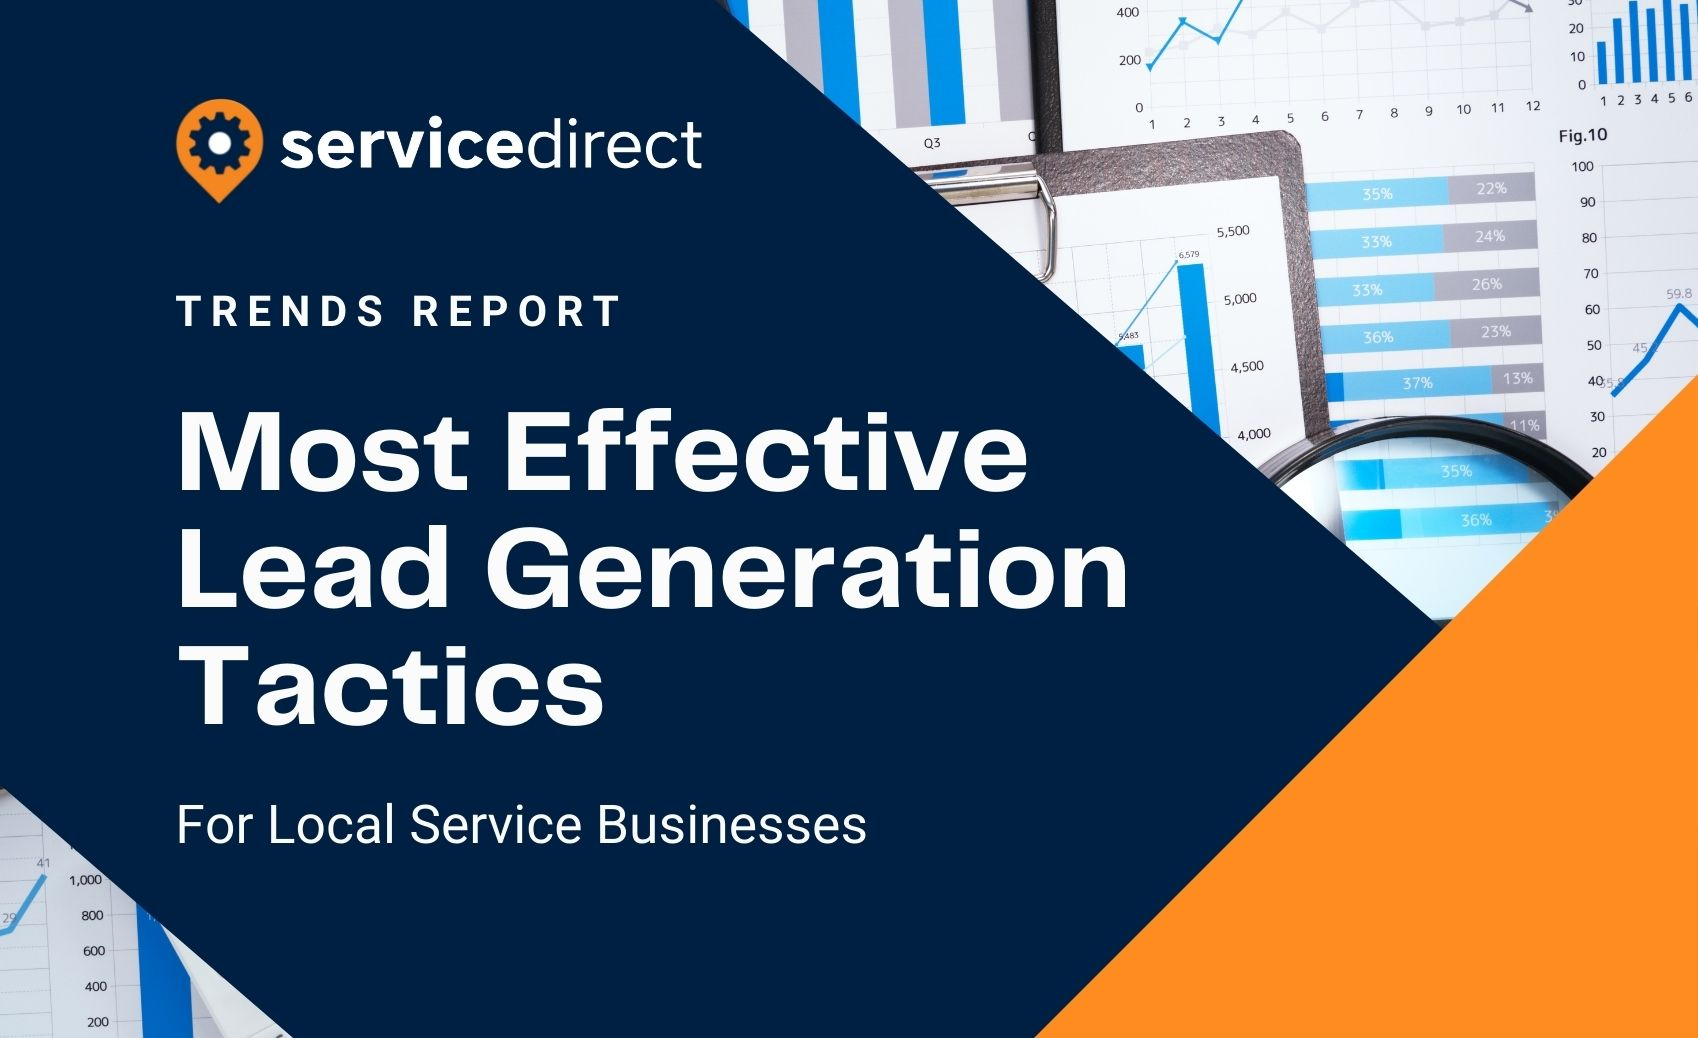 Most Effective Lead Generation Tactics For Local Service Businesses